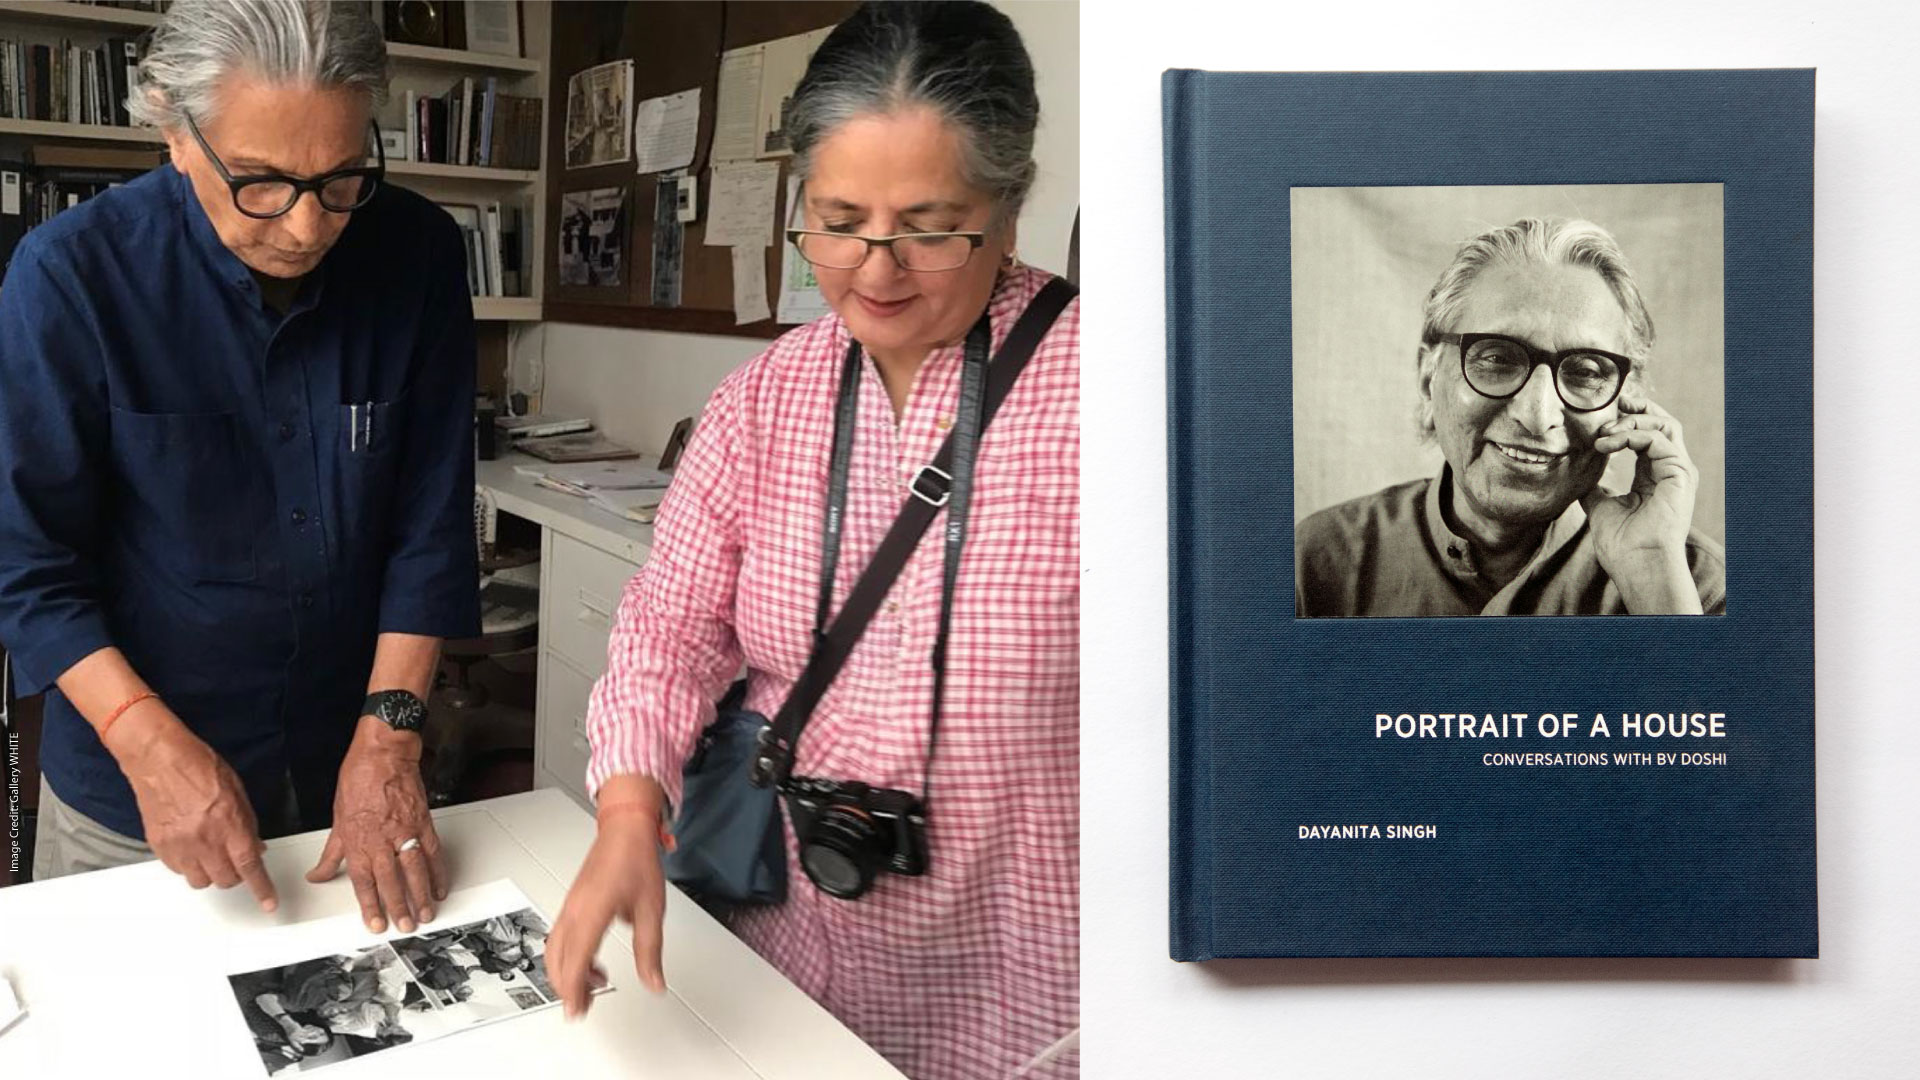 The book, authored by Dayanita Singh, relates the life of the house built by Pritzker Architecture Prize laureate BV Doshi | Portrait of a House: Conversations with BV Doshi by Dayanita Singh | STIRworld